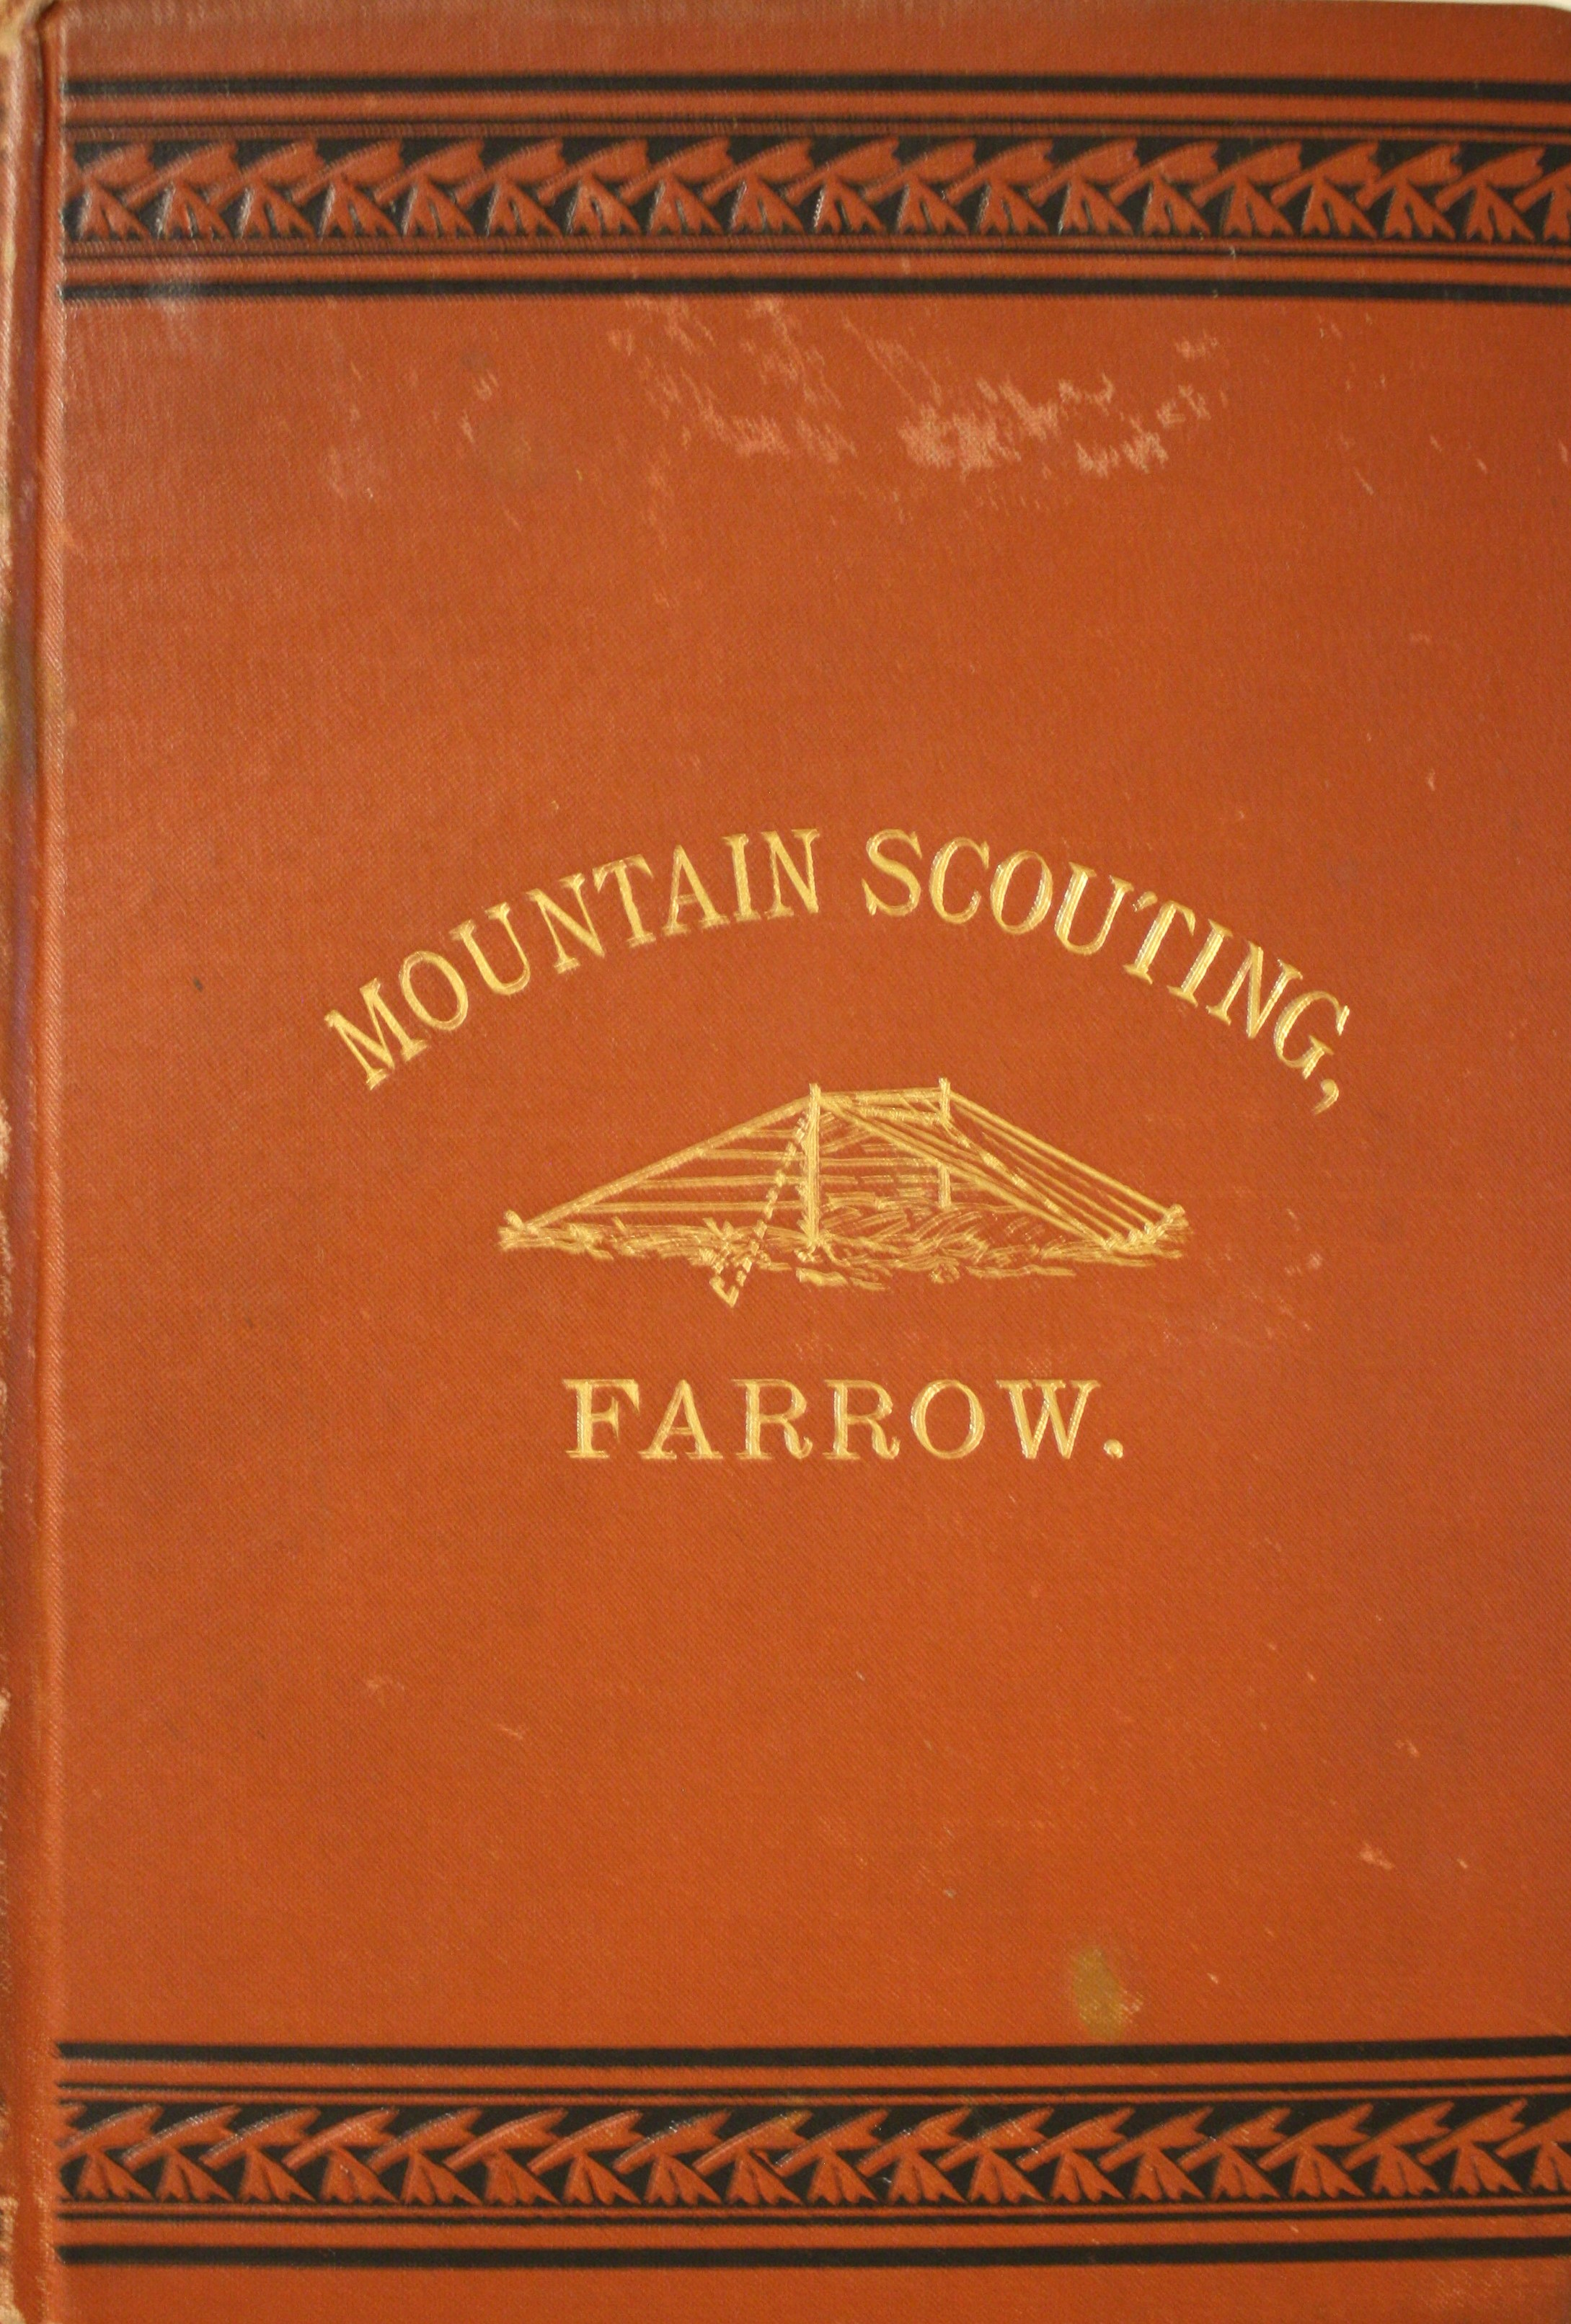 Image for Mountain Scouting A Hand-Book for Officers and Soldiers On The Frontiers. Profusely Illustrated And Containing Numerous Notes On The Art Of Travel.